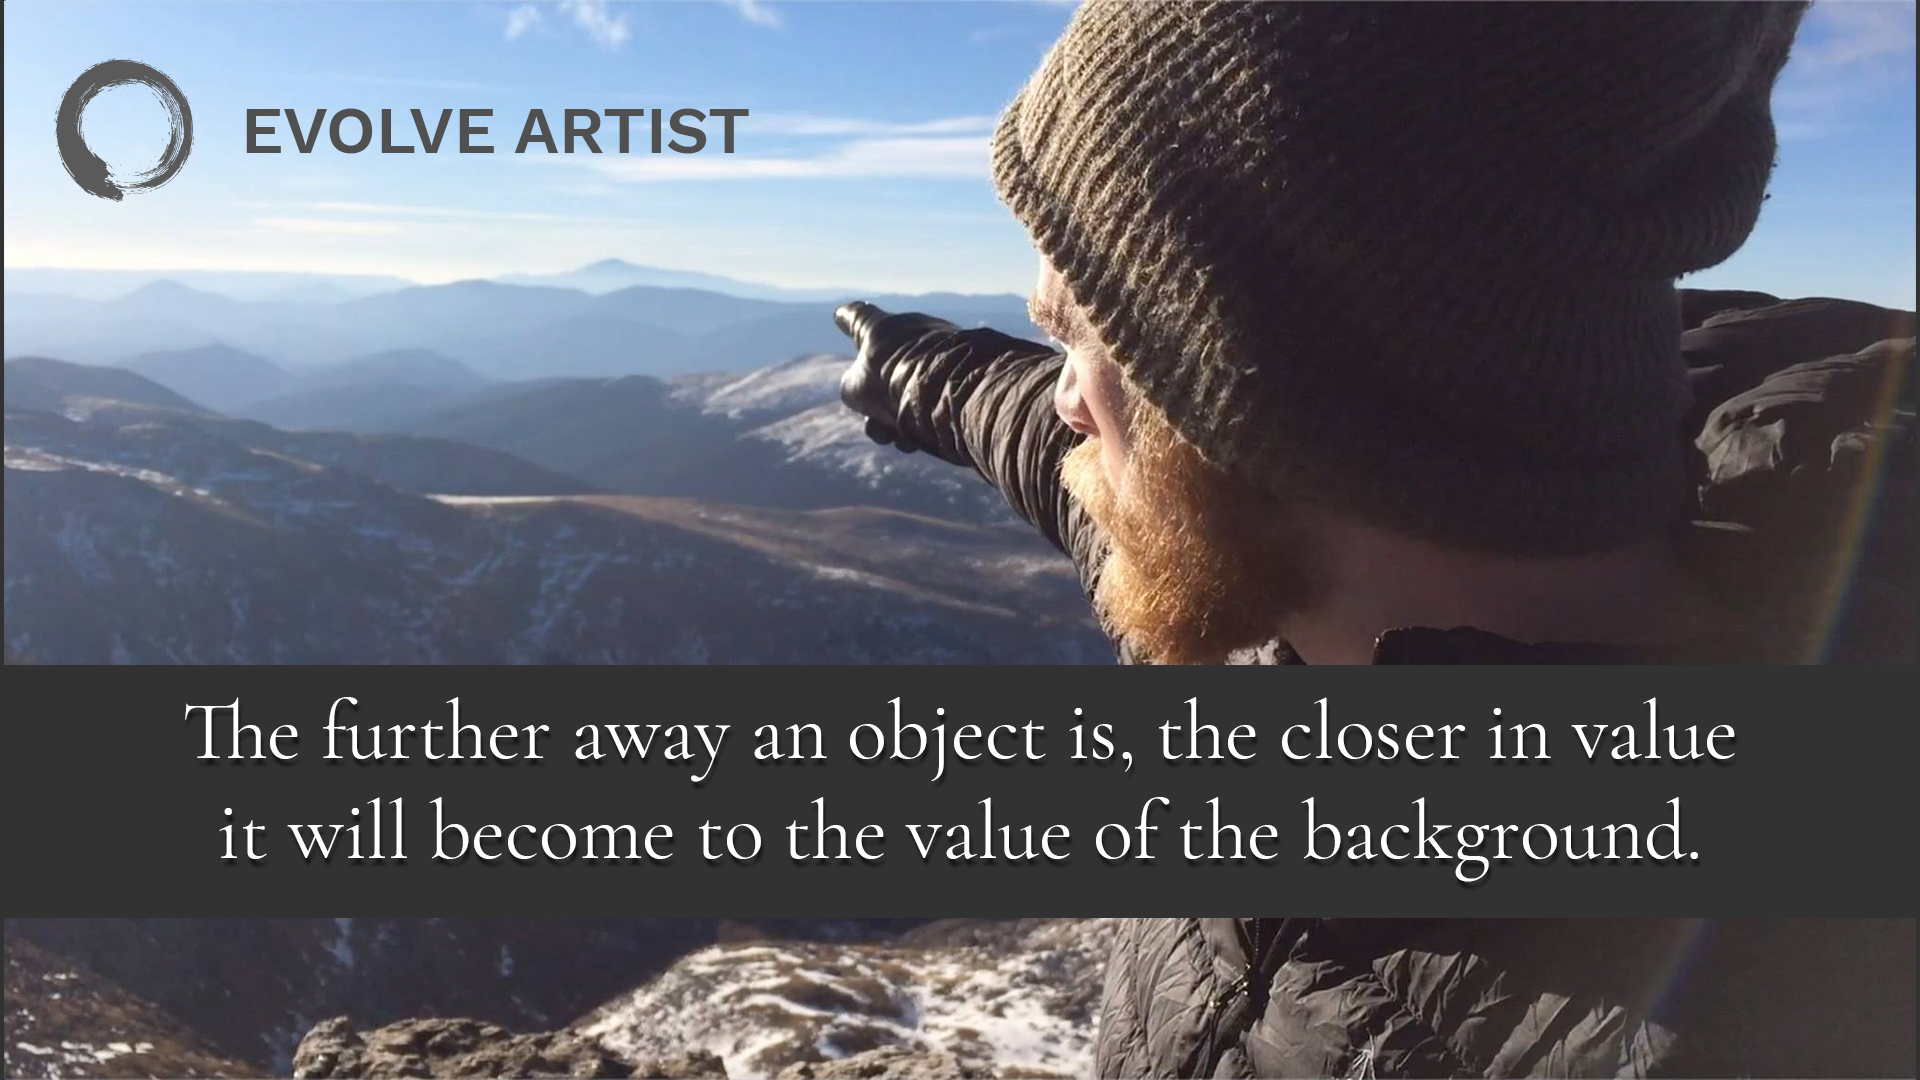 Objects further away are closer in value to the background